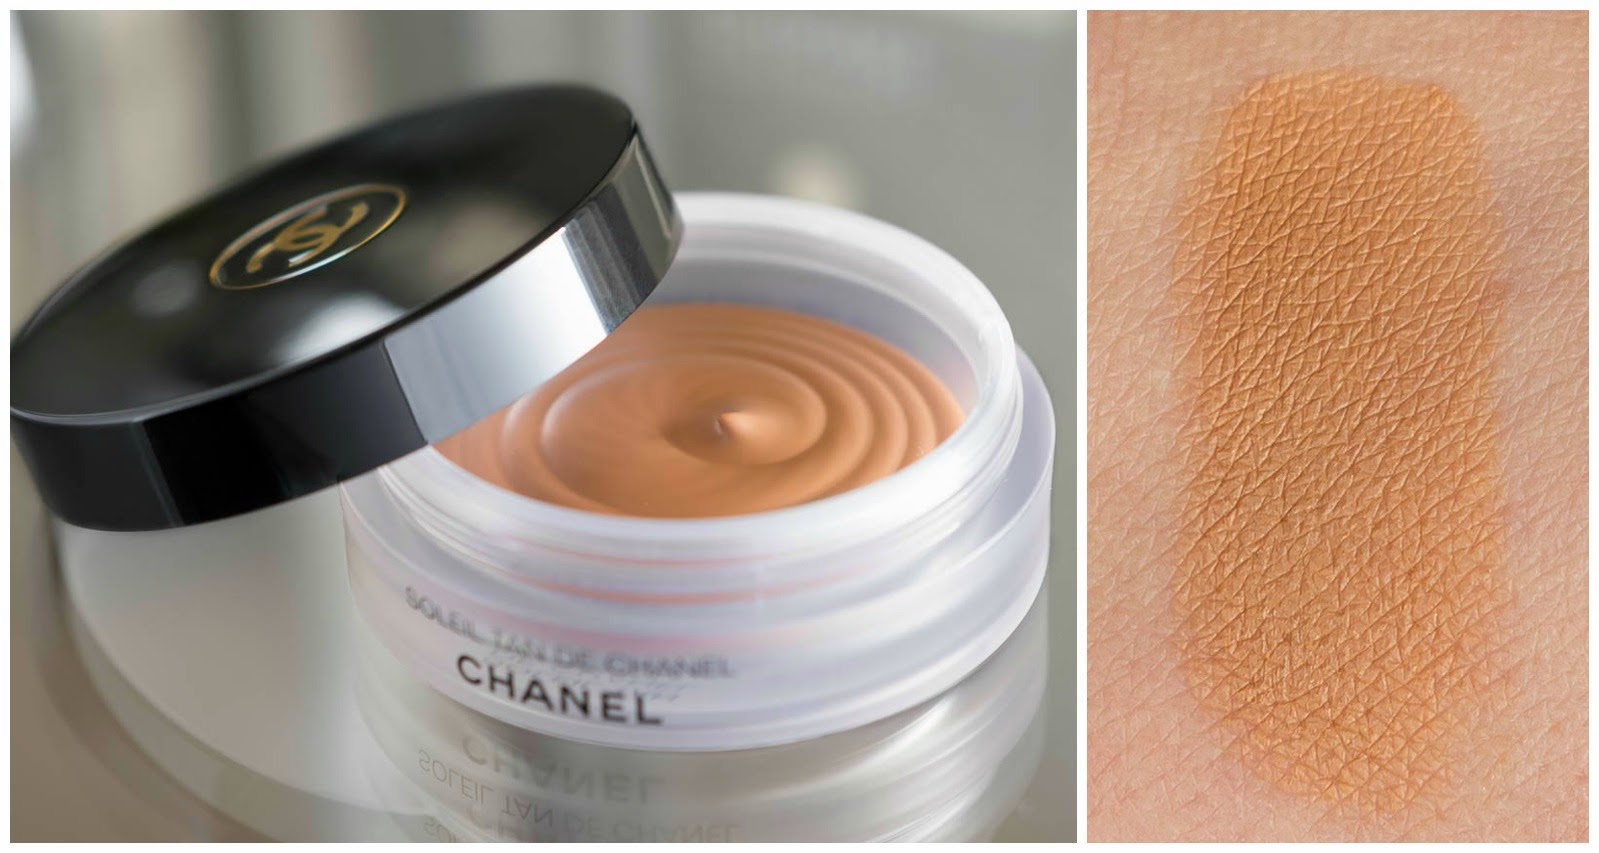 Chanel Soleil Tan de Chanel Bronze Universel